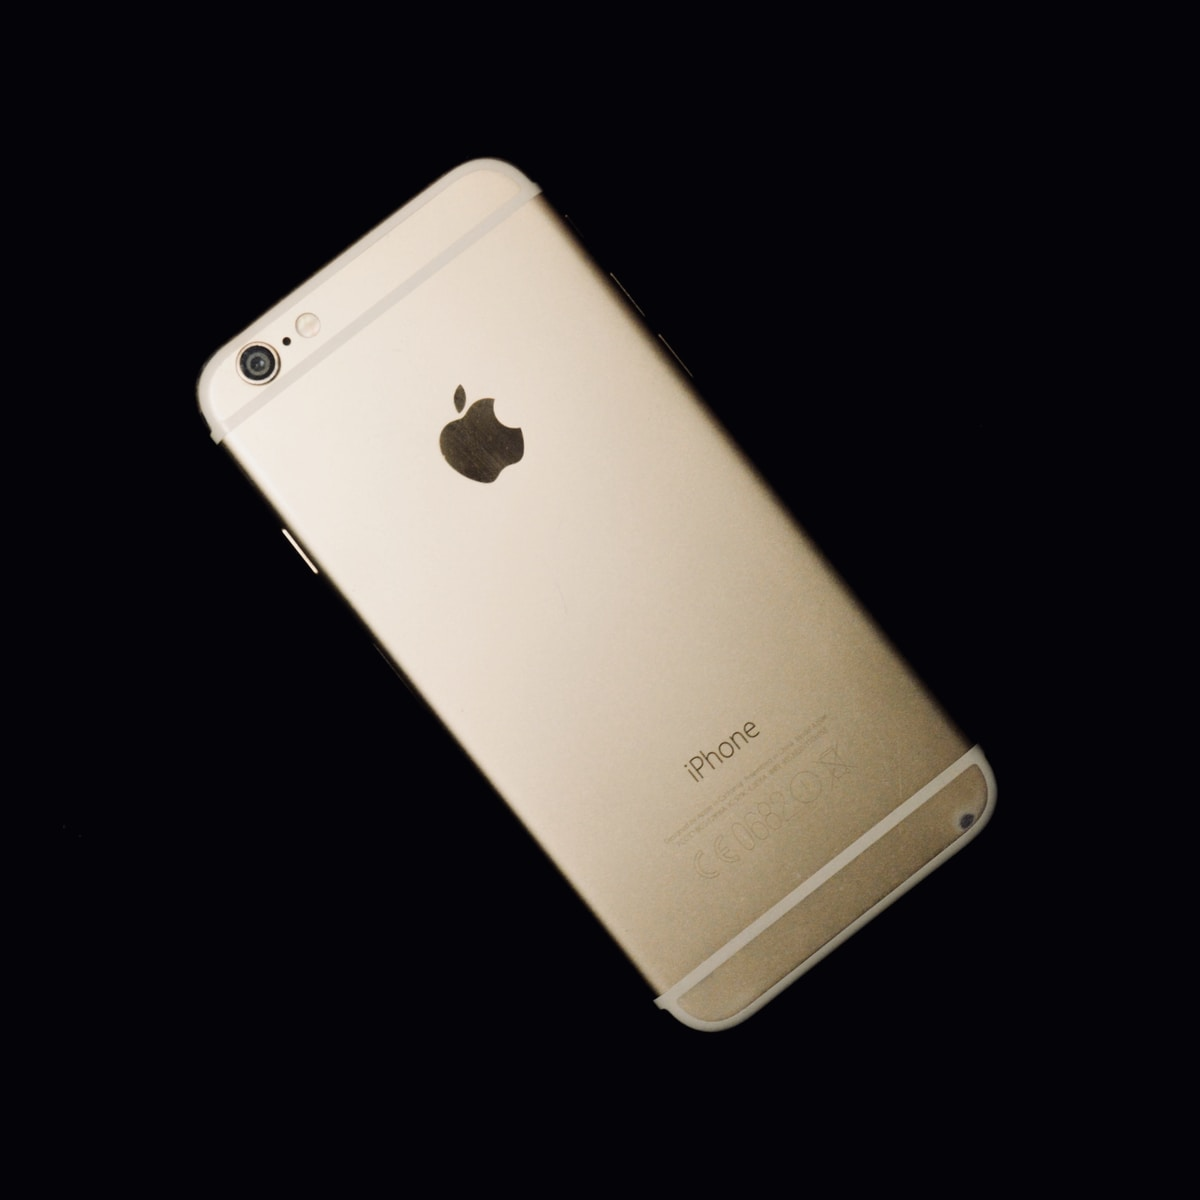 gold iPhone 6 on black background